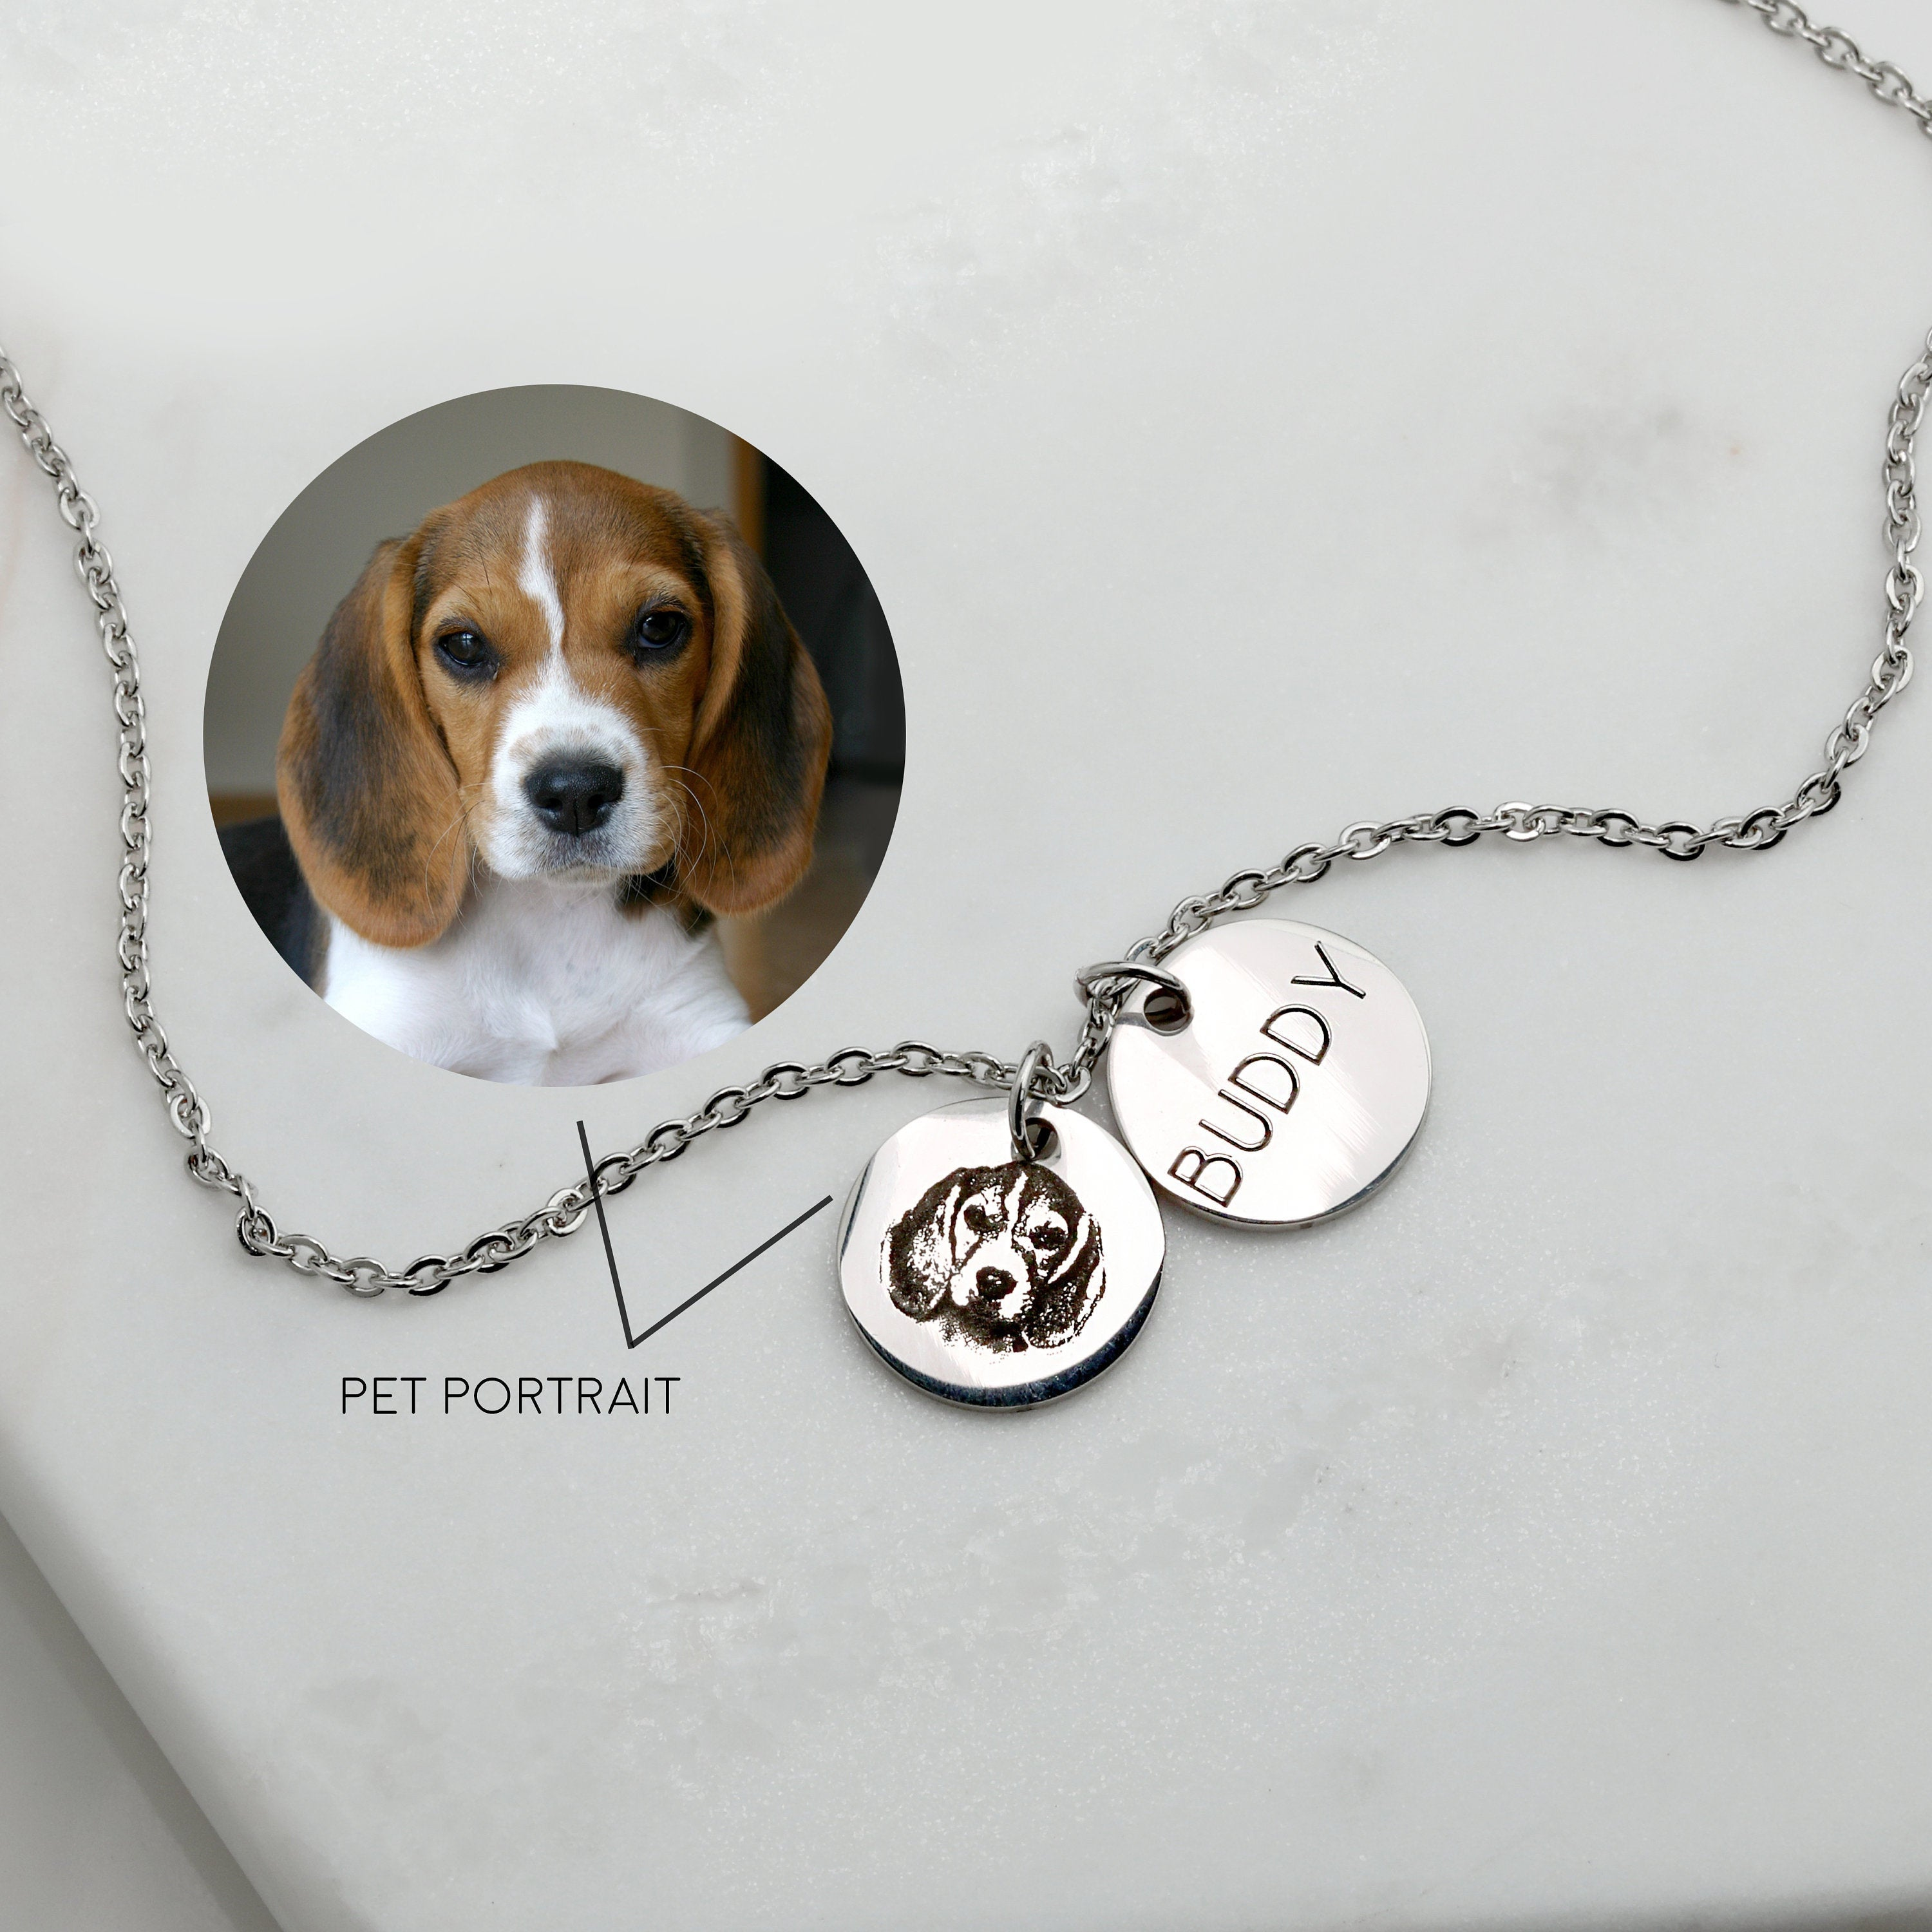 925 Sterling Silver Dog Photo Engraved 2-Coin Necklace Inspirational Gift - onlyone